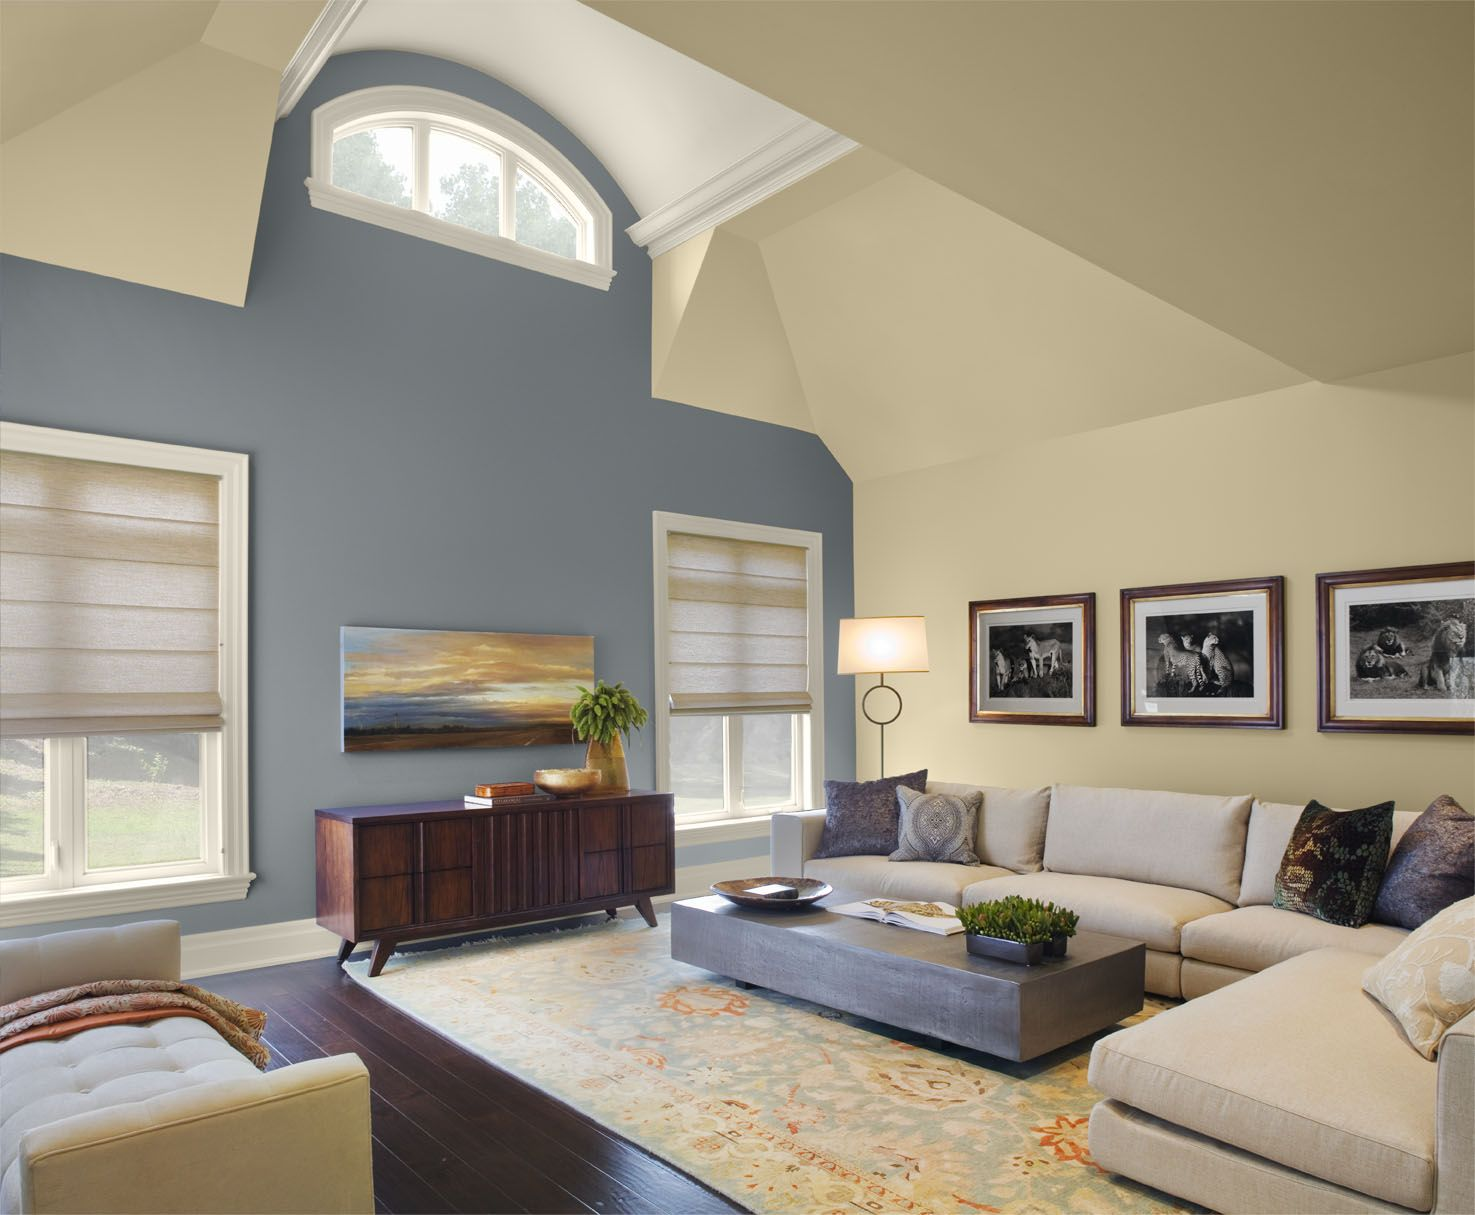 Modern Color Schemes For Living Rooms A Living Room 1 Nopillow V6 Arch Paint Colors Ballet And